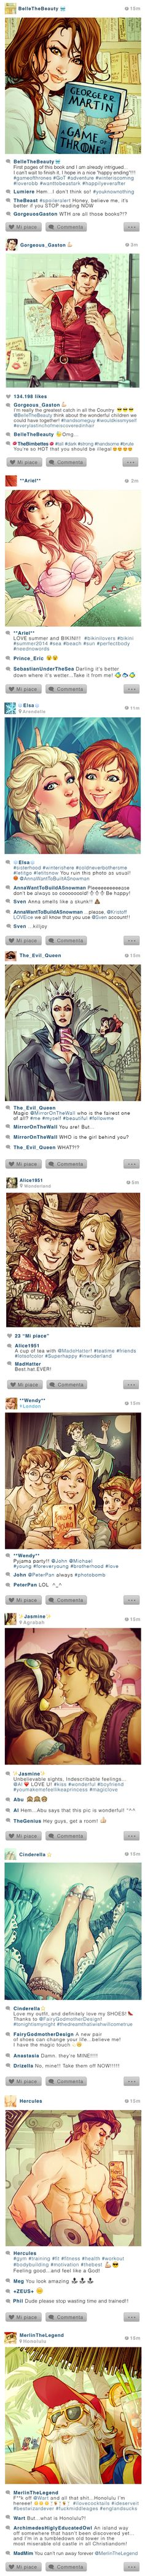 What if Disney characters had Instagram accounts?